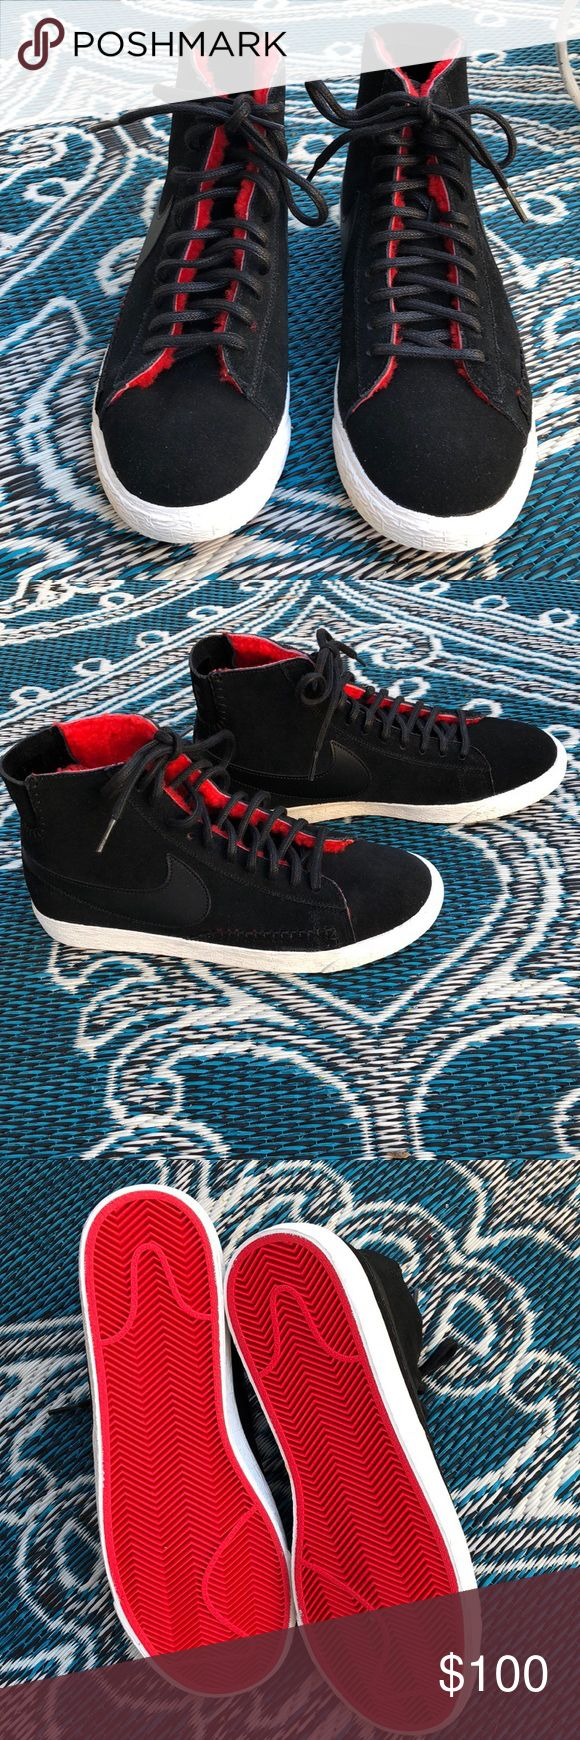 Nike mid-top Tennis Suede super cute and comfy NWOT Nike Shoes Ankle Boots & Booties